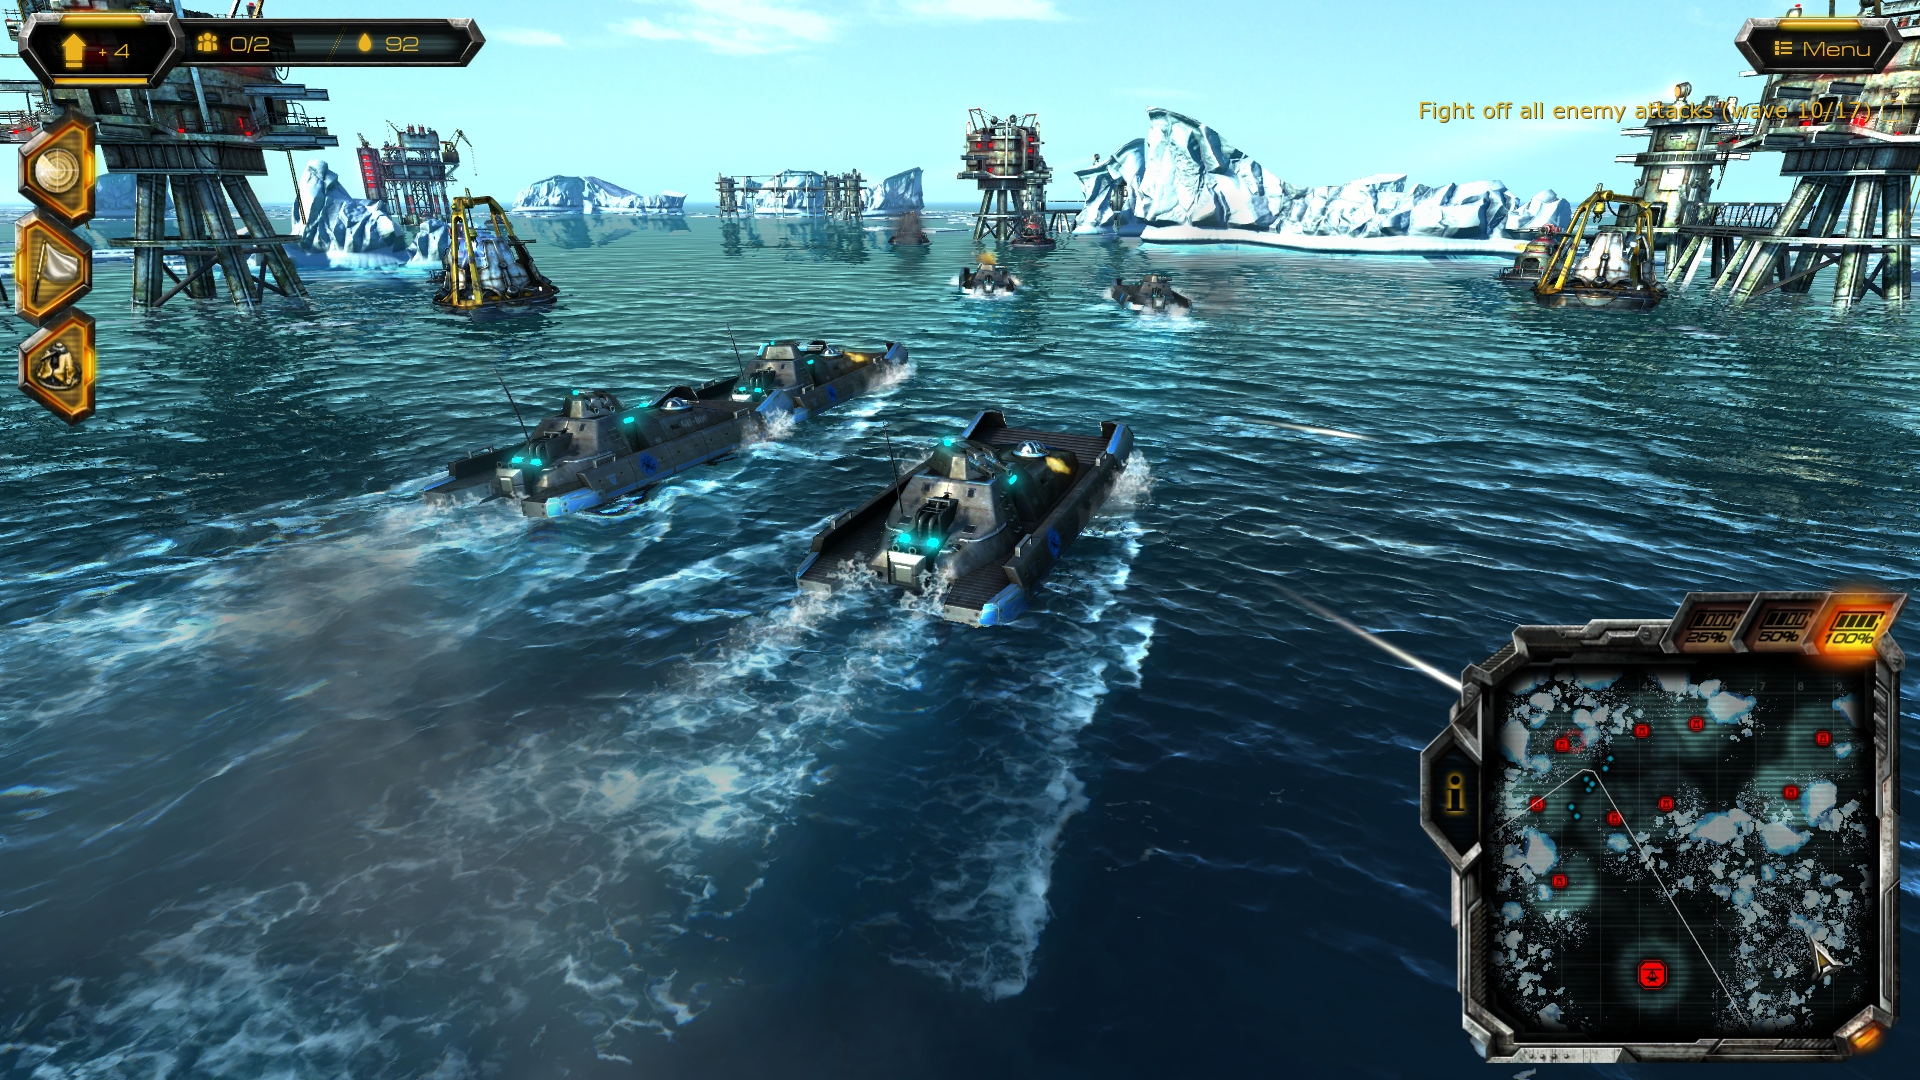 Oil Rush: naval strategy game for Windows, Linux, Mac OS X, Android